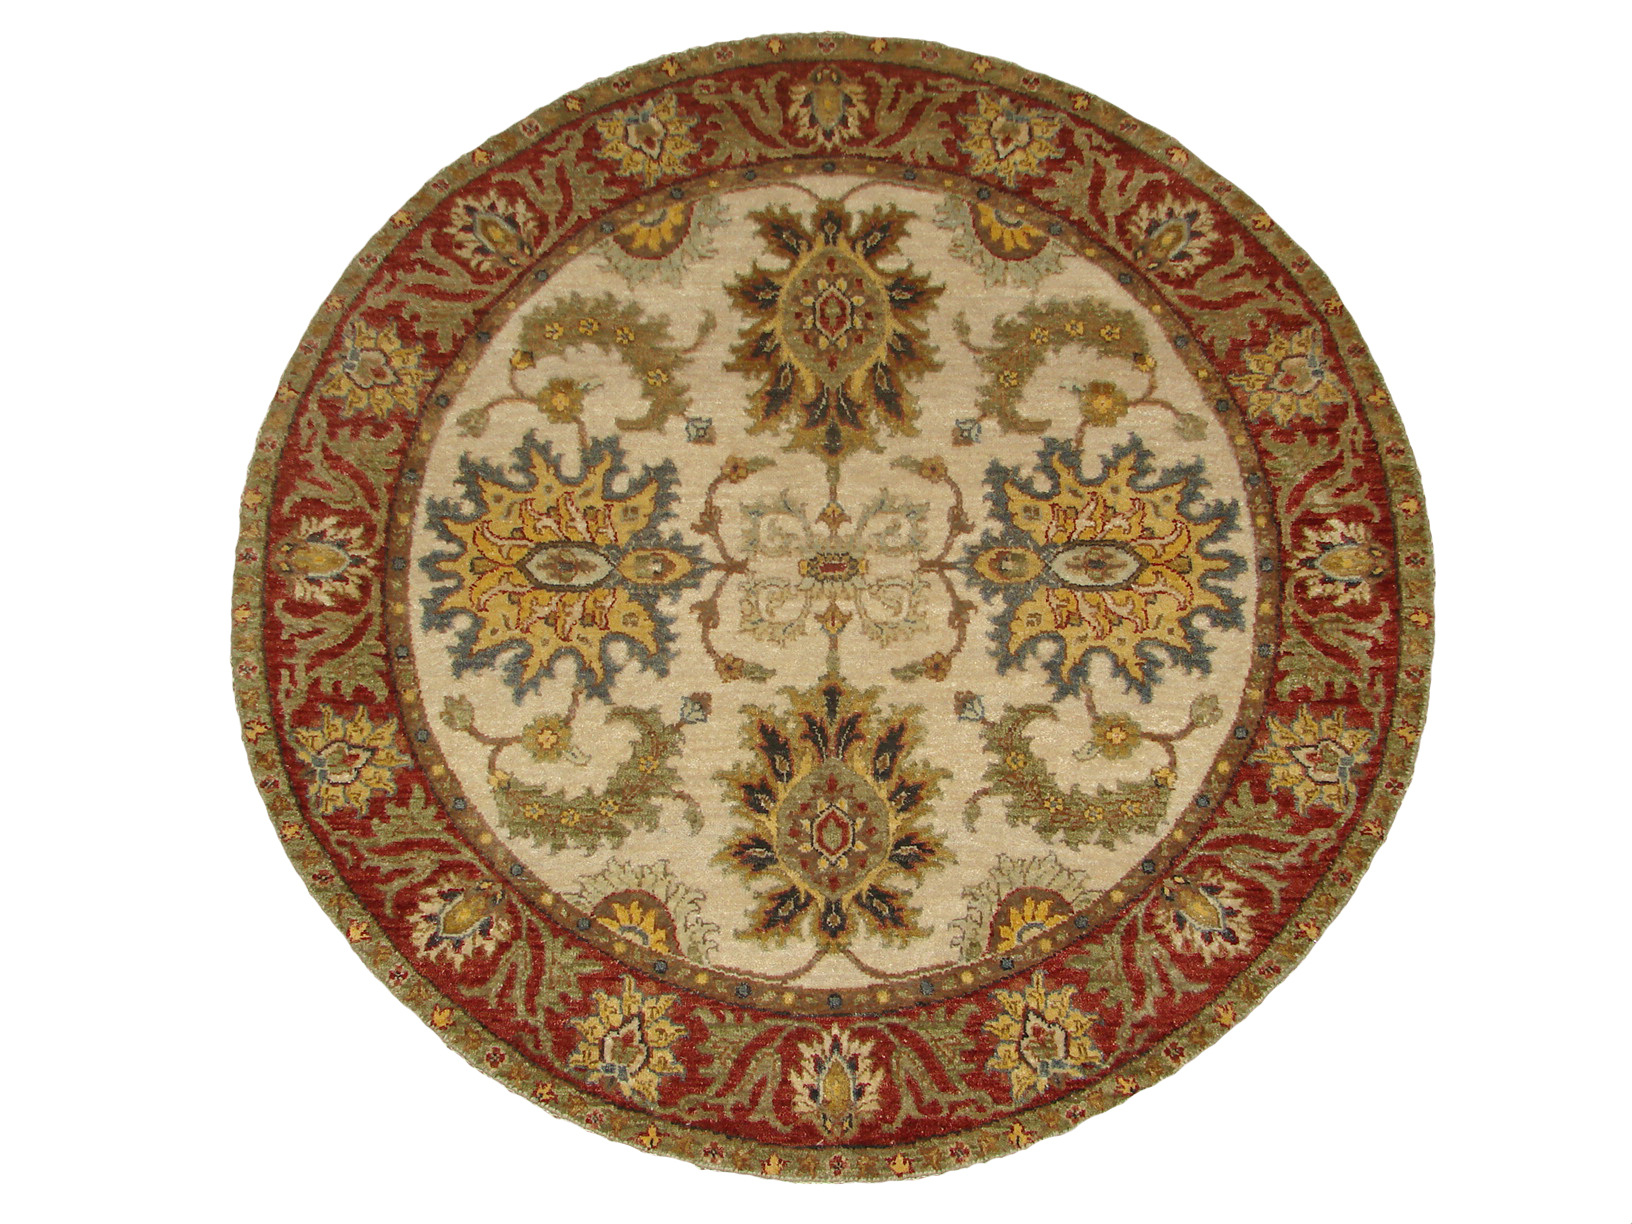 4 Round & Square Traditional Hand Knotted Wool Area Rug - MR18678